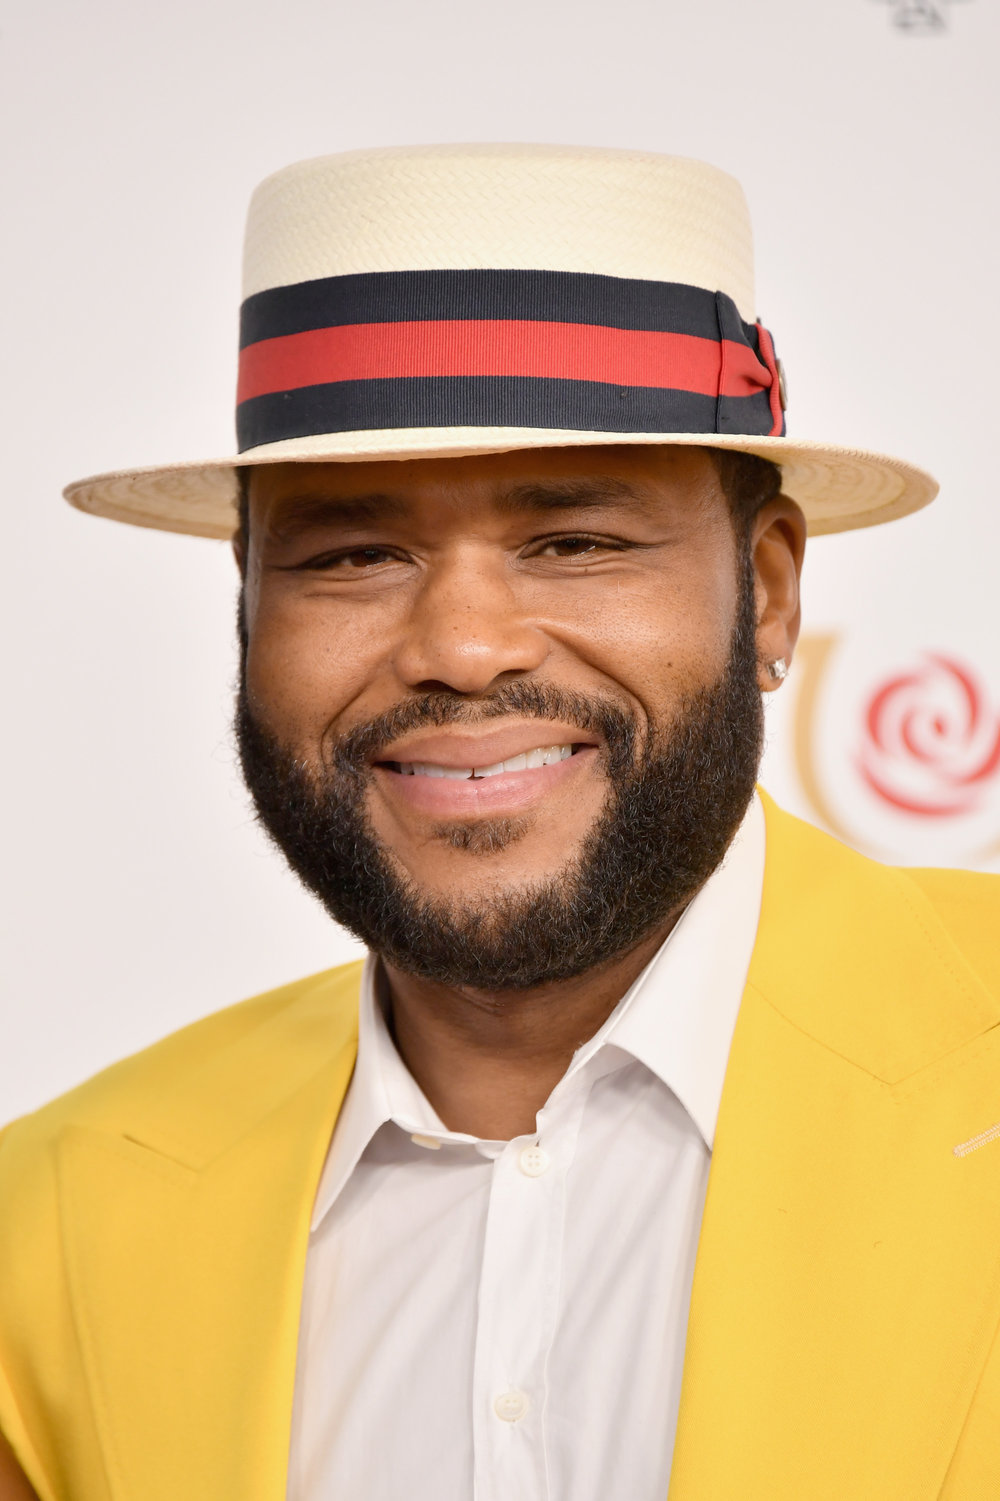 LOUISVILLE, KY - MAY 05:  Actor Anthony Anderson attends Kentucky Derby 144 on May 5, 2018 in Louisville, Kentucky.  (Photo by Michael Loccisano/Getty Images for Churchill Downs) *** Local Caption *** Anthony Anderson